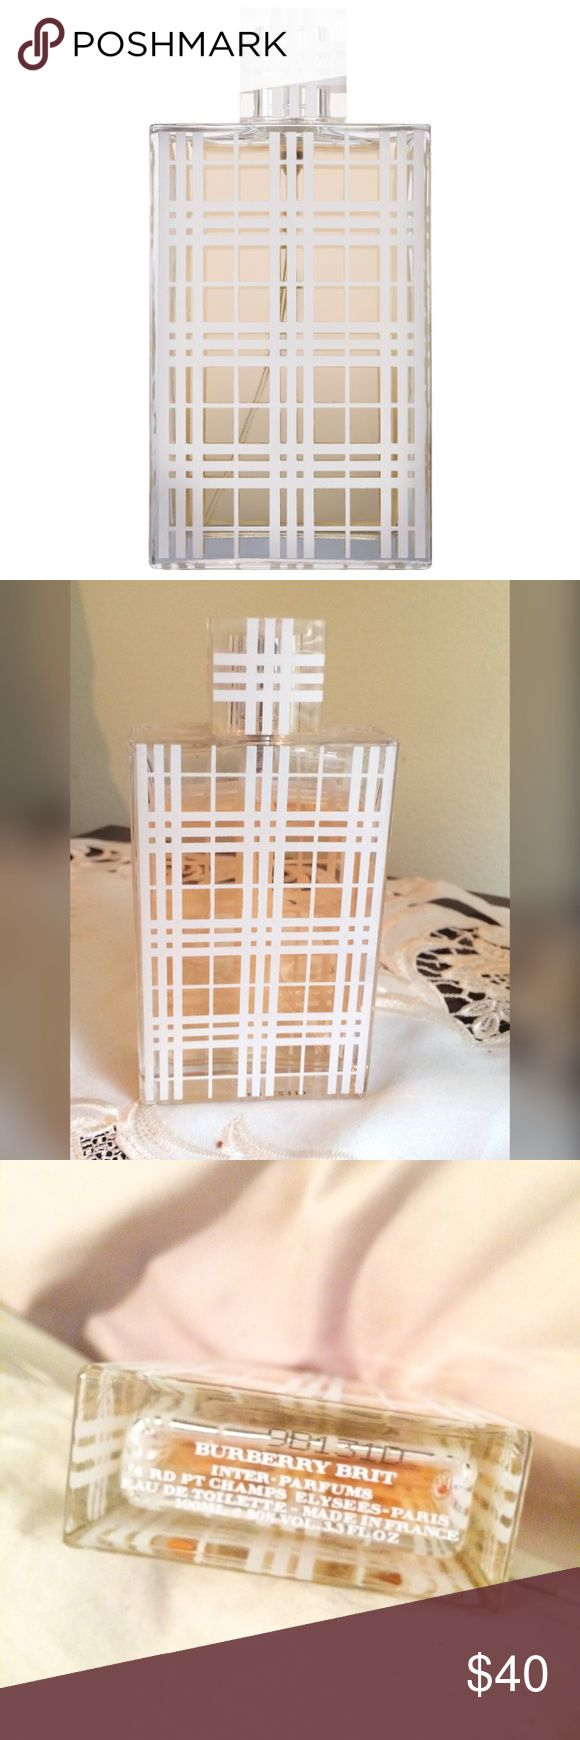 Burberry Brit women's Parfum Burberry Brit 3.3oz women's Parfum. Lightly used and missing about 1/2 from top of the bottle. Burberry Brit is a feminine scent recommended for daytime wear. Does not come with box. Priced to sell! Burberry Other